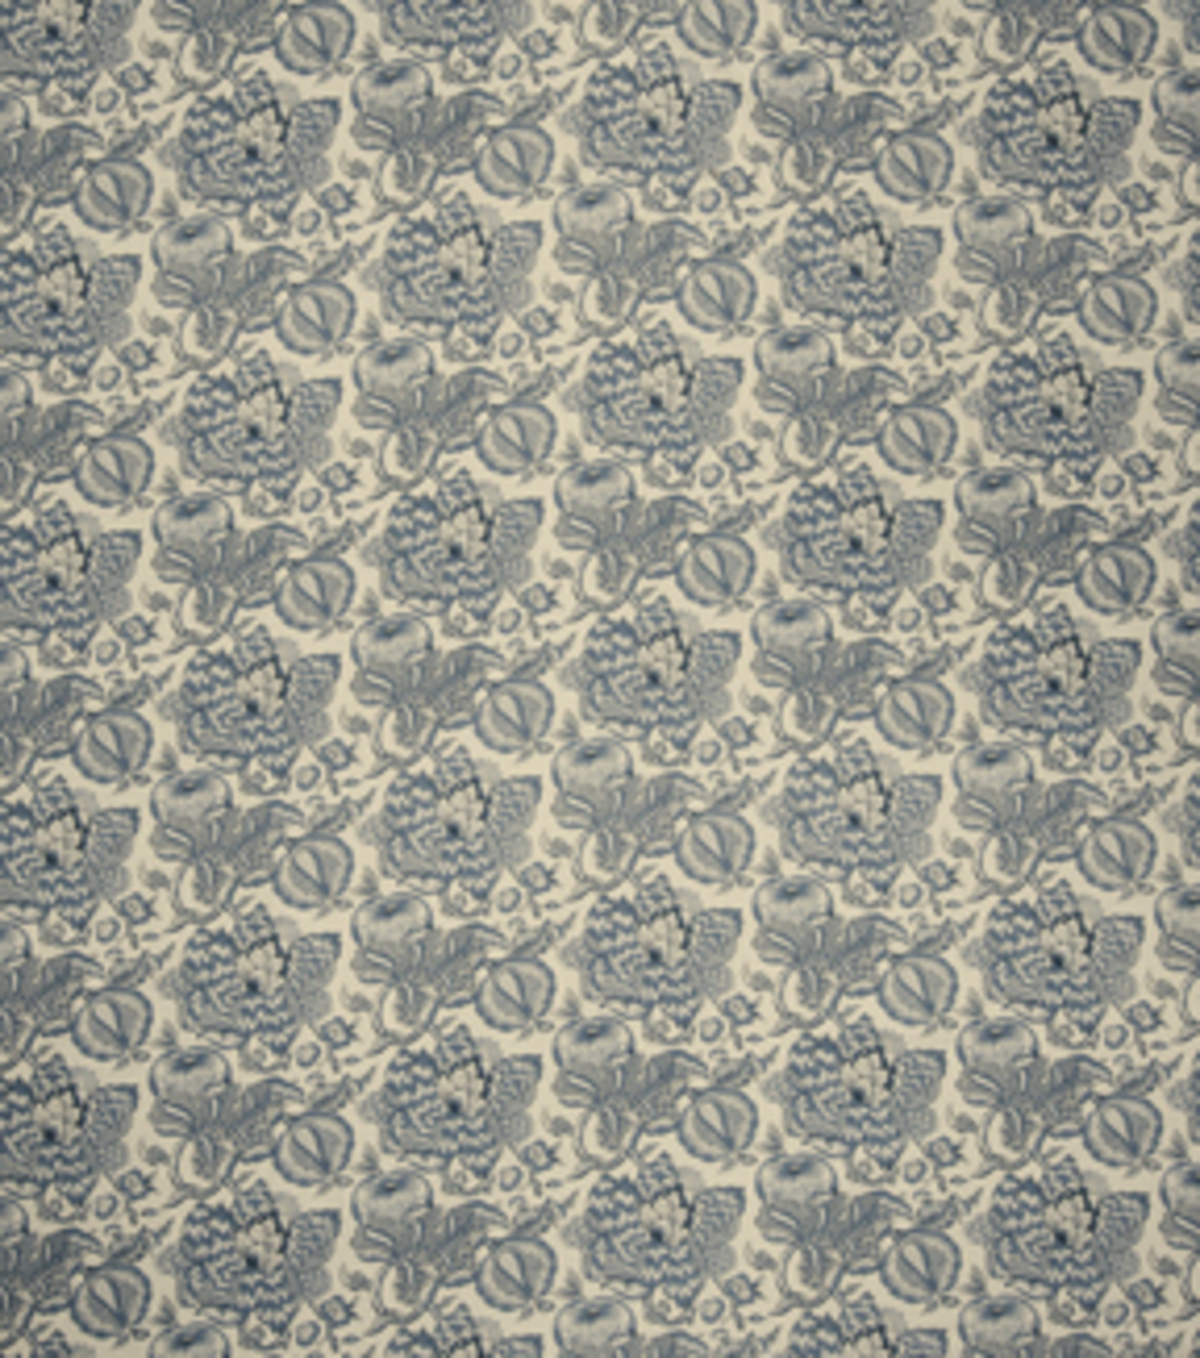 Home Decor 8\u0022x8\u0022 Fabric Swatch-French General Camilla Indigo